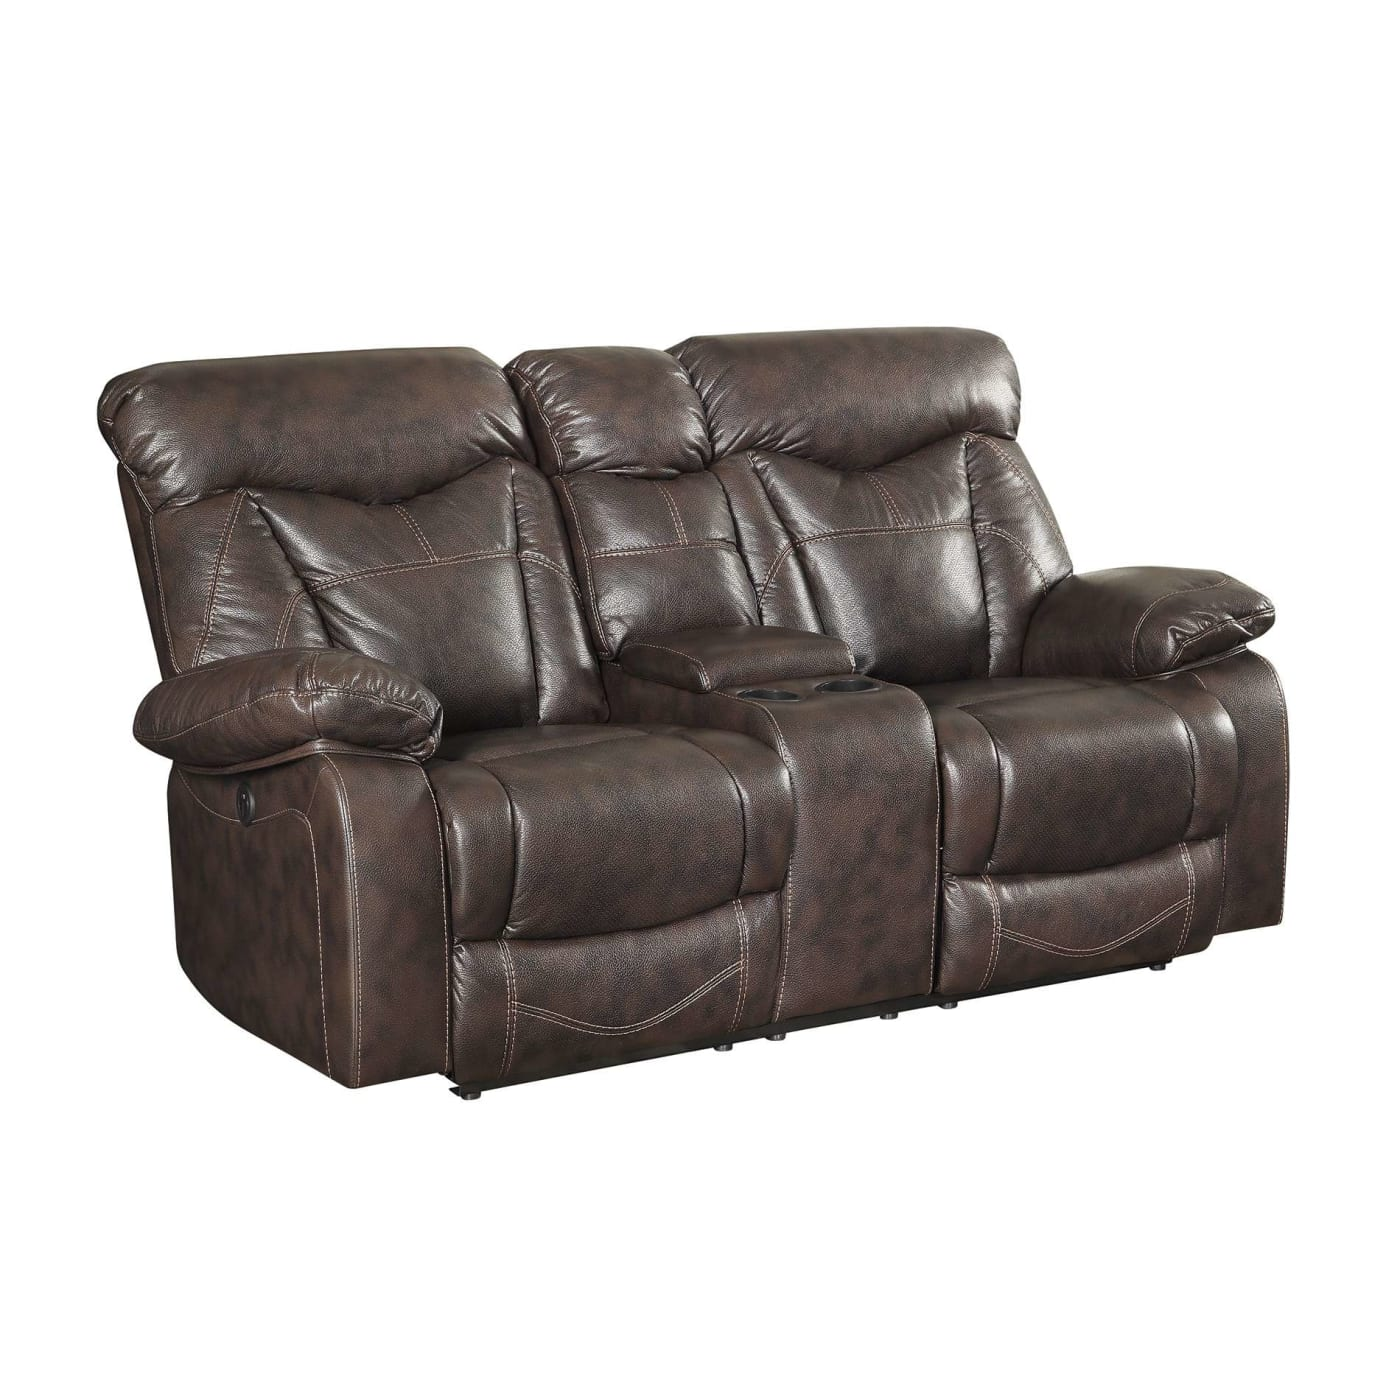 Coaster Zimmerman Brown Leatherette Power Reclining